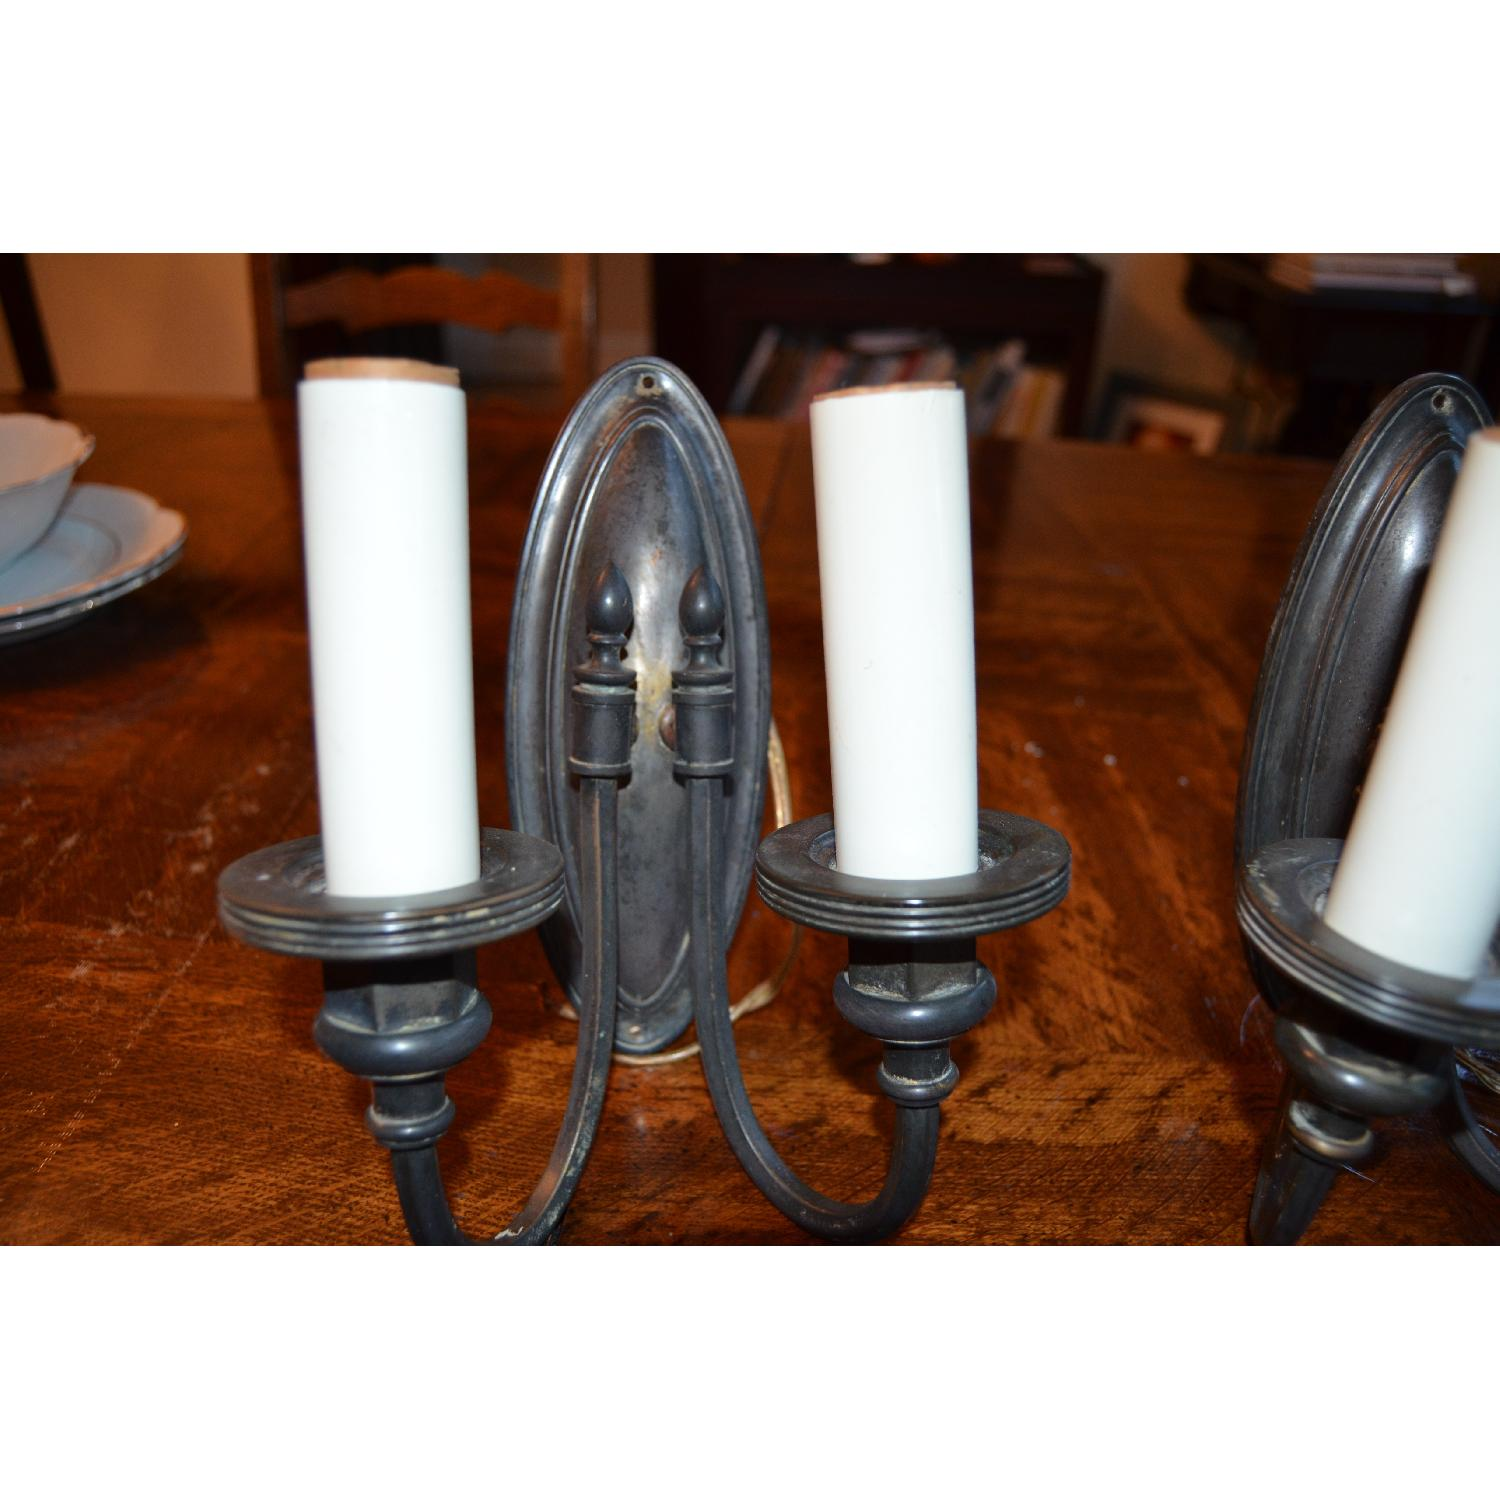 Vintage Metal Sconces-4